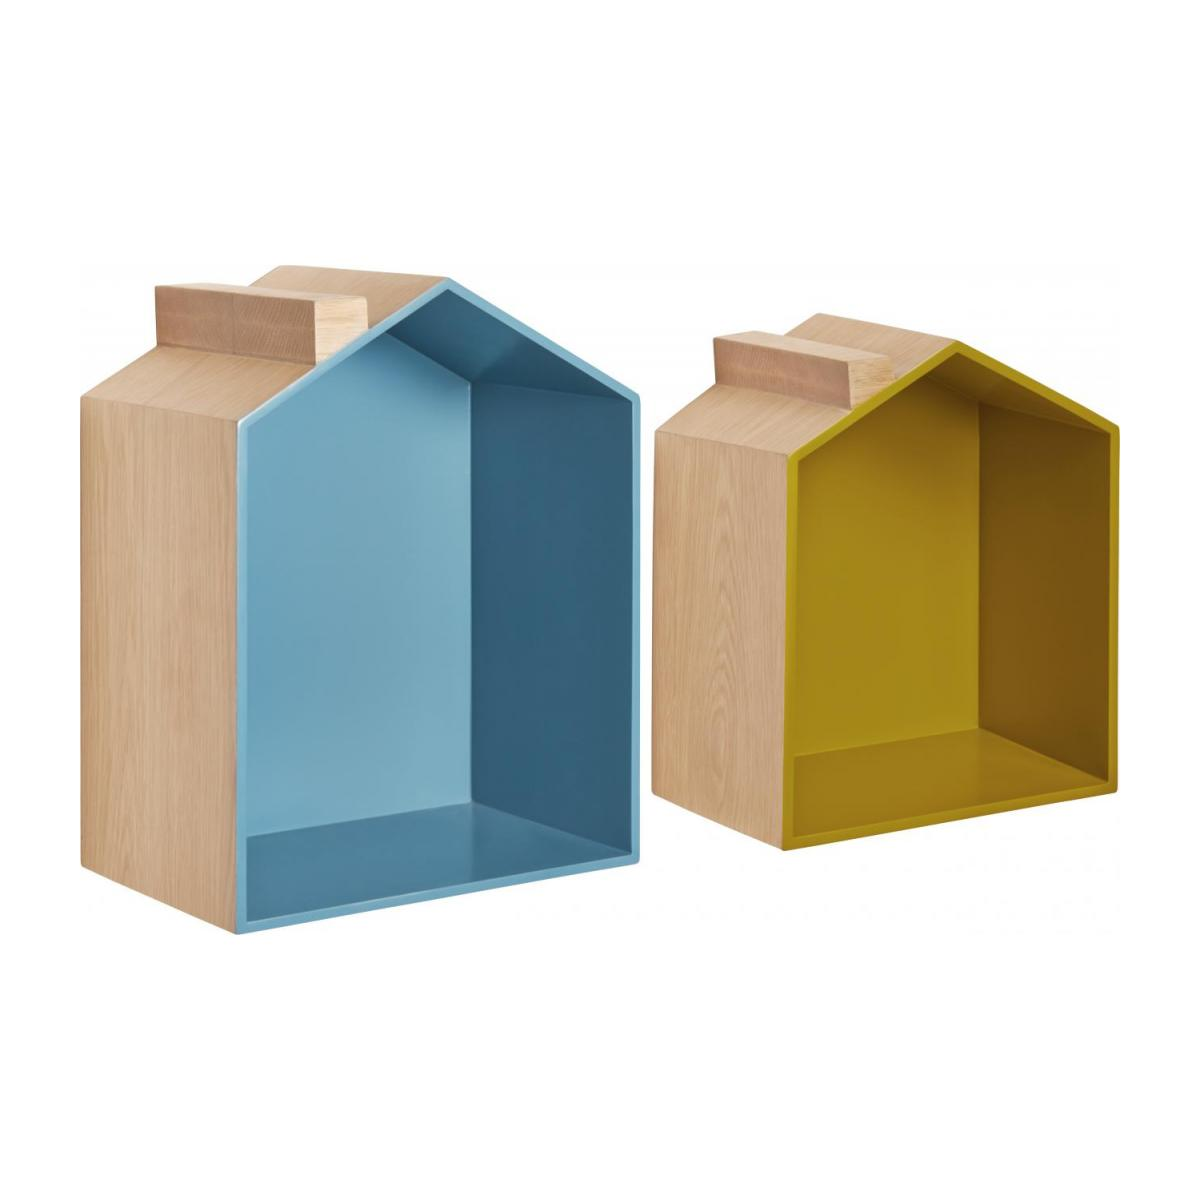 Set of 2 shelves made of oak, natural, grey-blue and yellow n°1